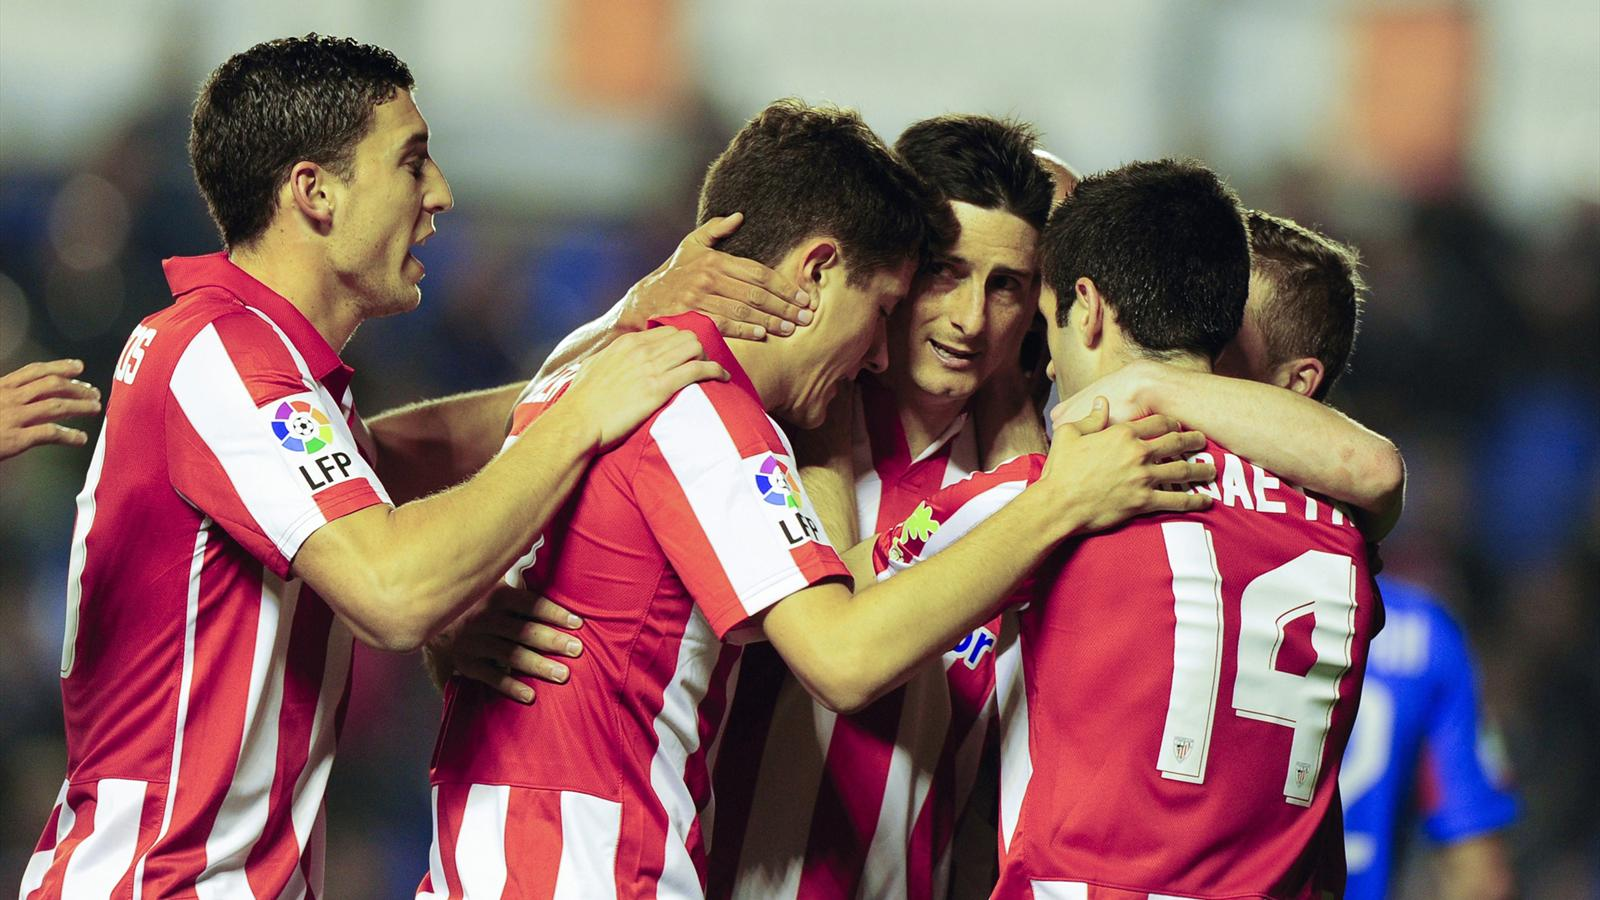 Athletic Bilbao forward Aritz Aduriz celebrates after scoring against Levante at the Ciutat de Valencia stadium (AFP)